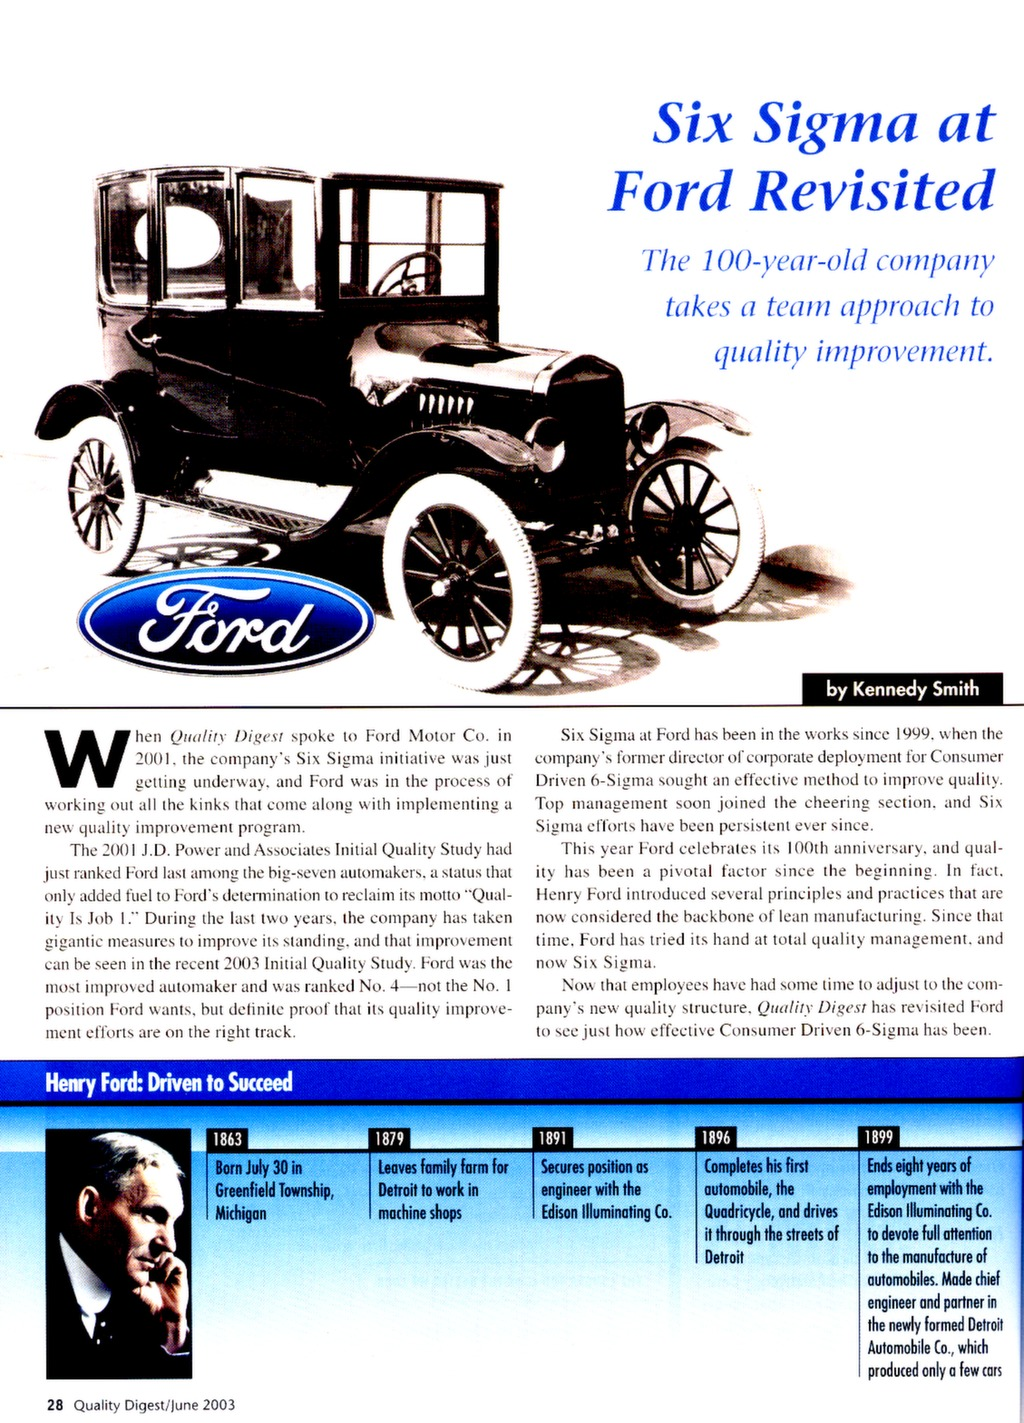 Six Sigma at Ford Revisited — ISSSP for Lean Six Sigma